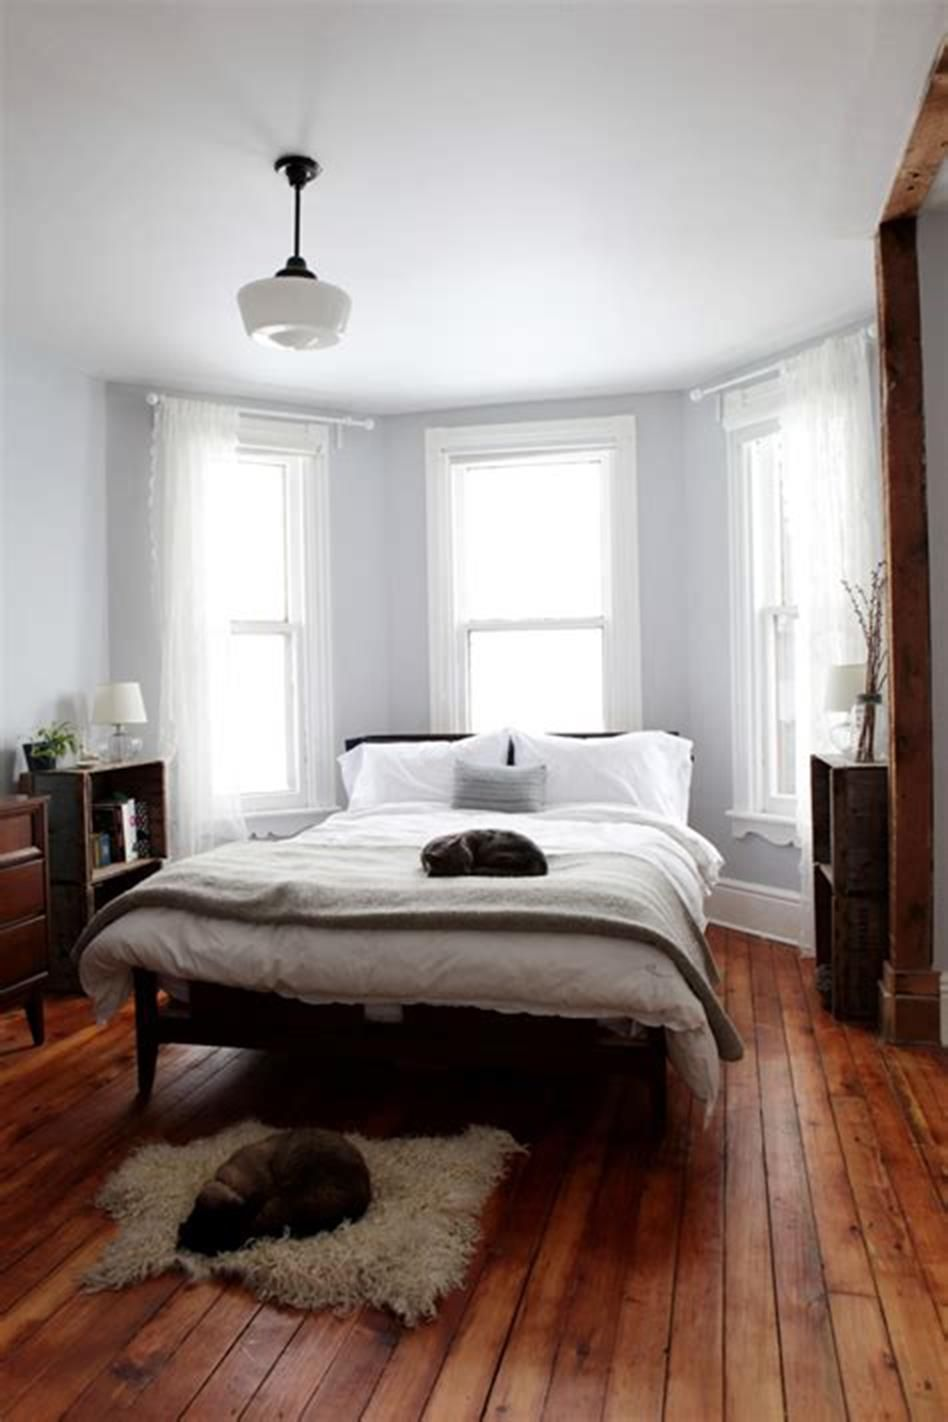 Wood Flooring Ideas And Trends For Your Stunning Bedroom Dark Ideas Decor Natural Light Walnut Bedroom Master Bedroom Flooring Ideas Bedroom Wood Floor